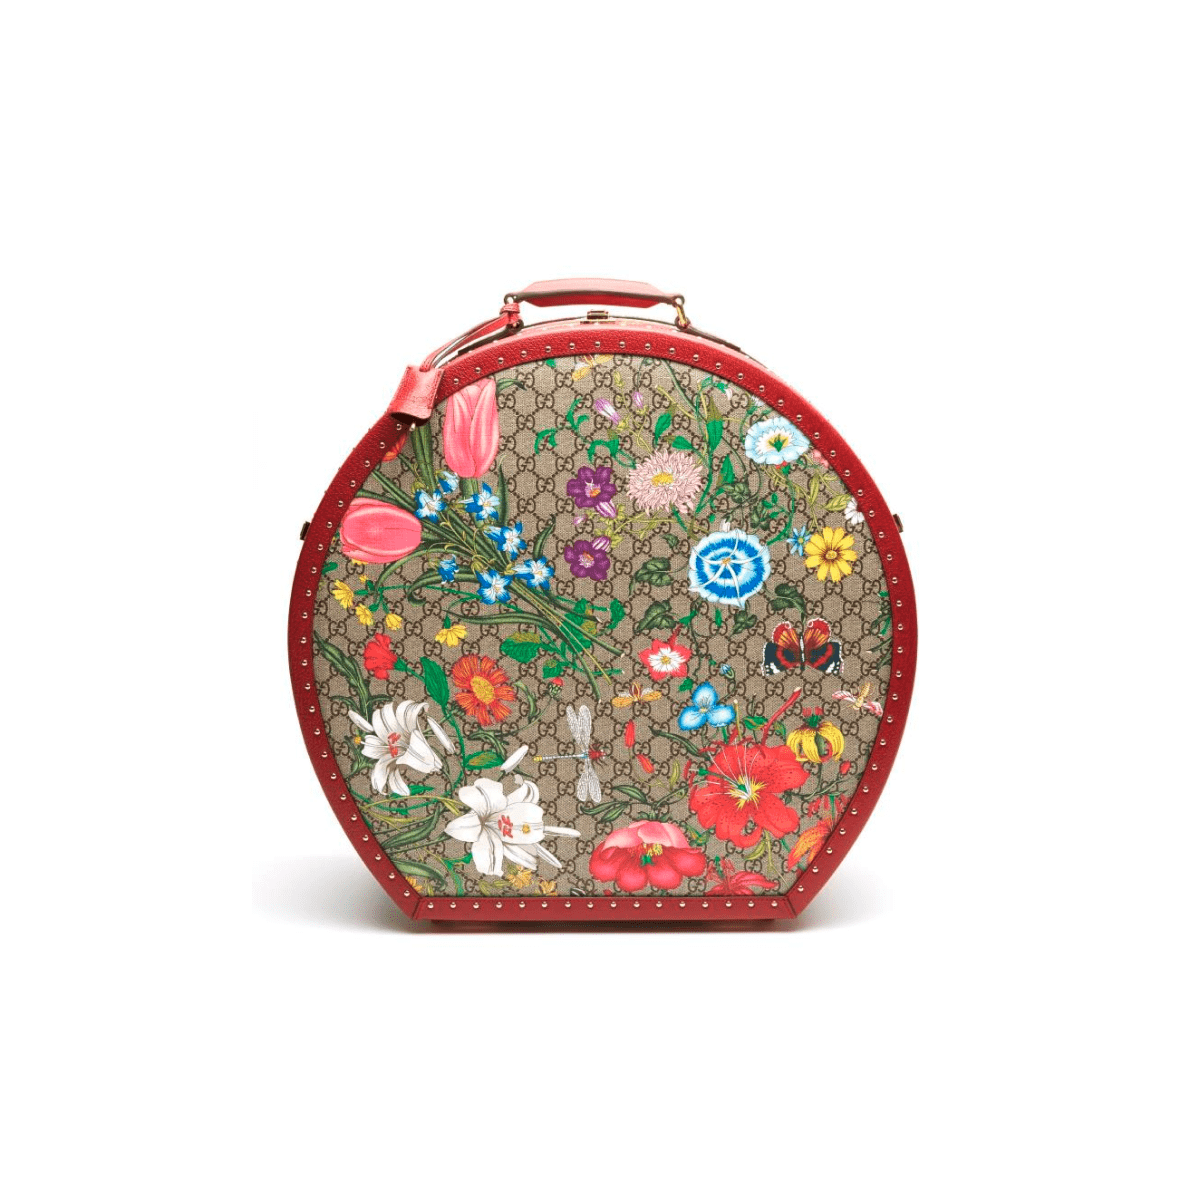 Gucci Small Hat Case in Gucci-Flora Print